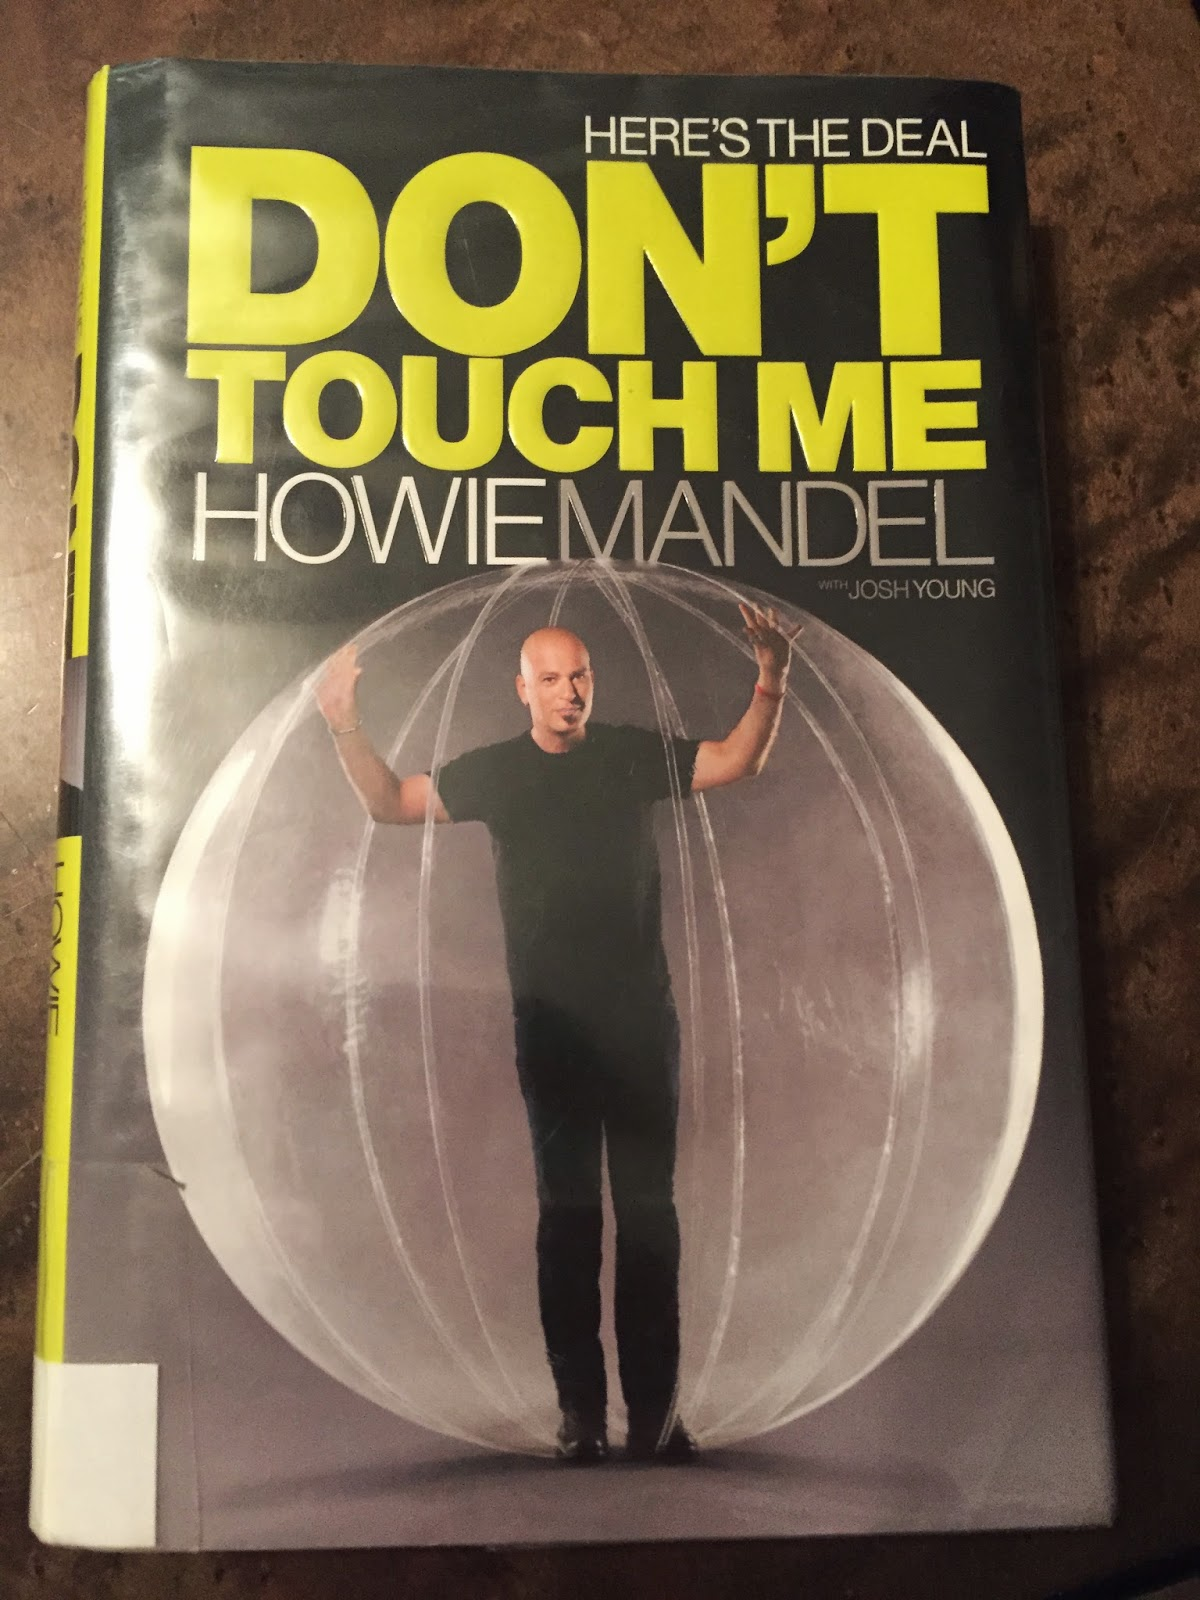 Here's the Deal: Don't Touch Me | Howie Mendel